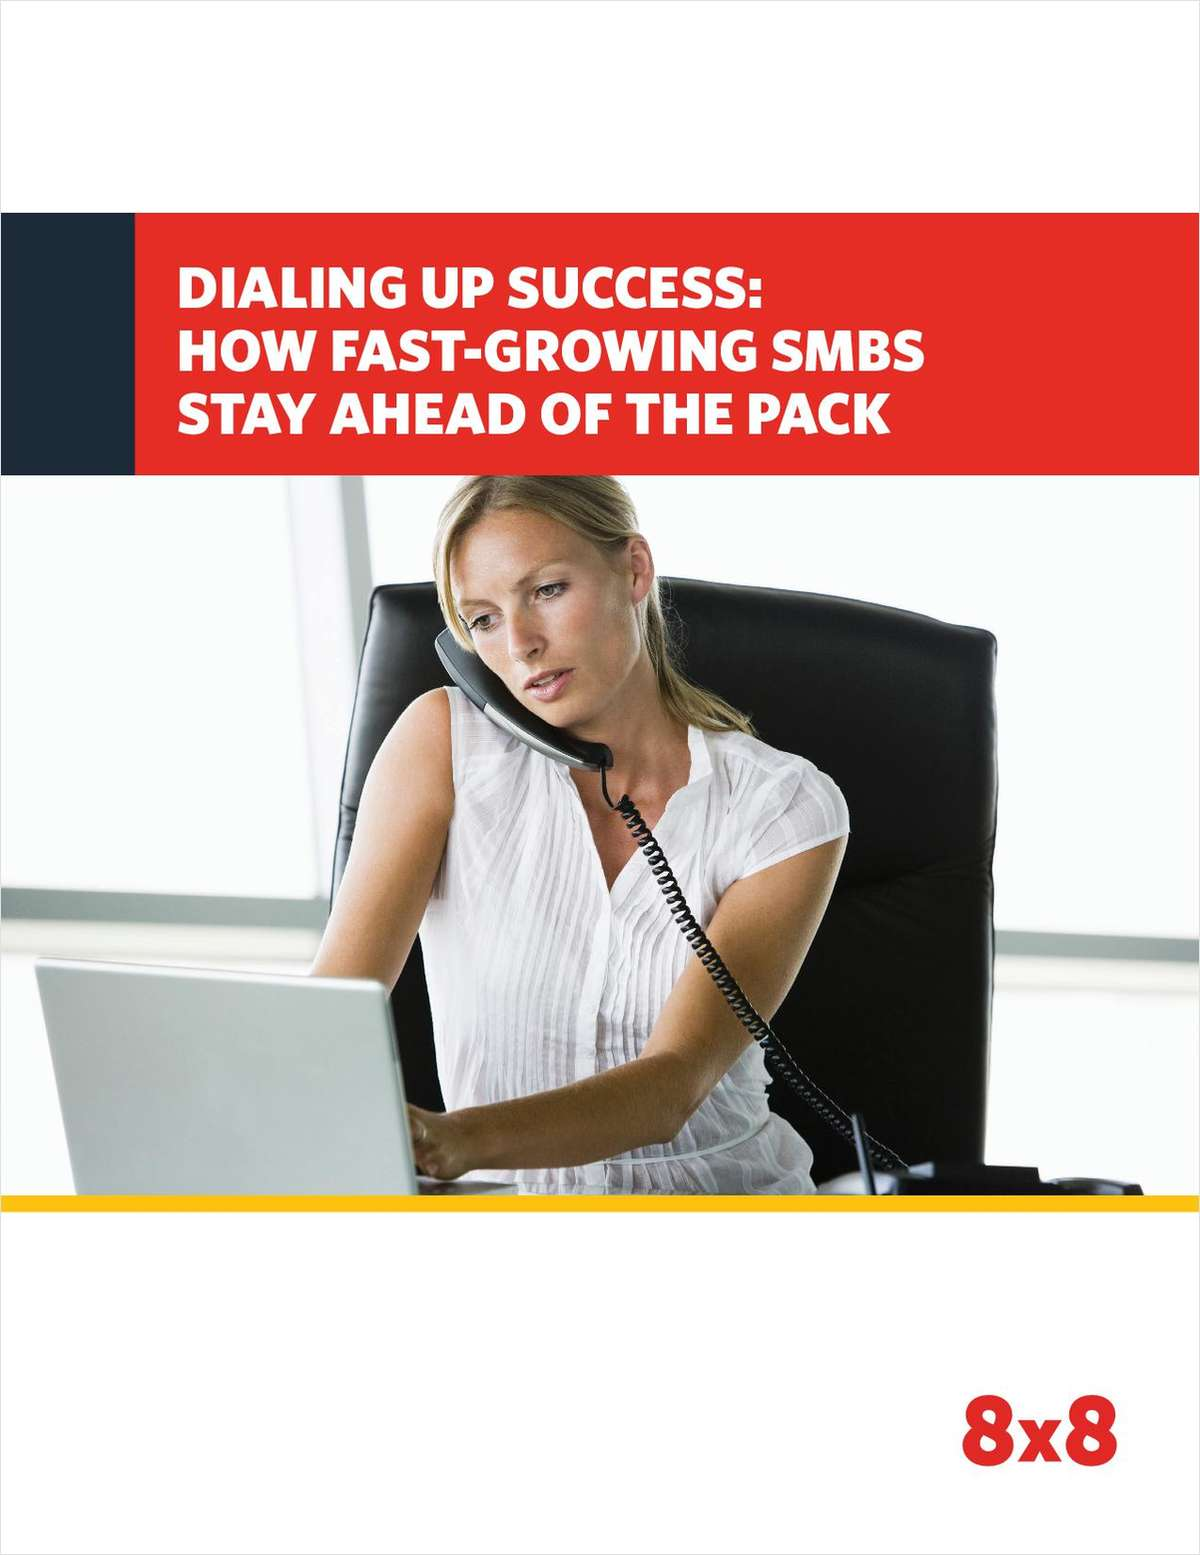 Dialing Up Success: How Fast-Growing SMBs Stay Ahead of the Pack